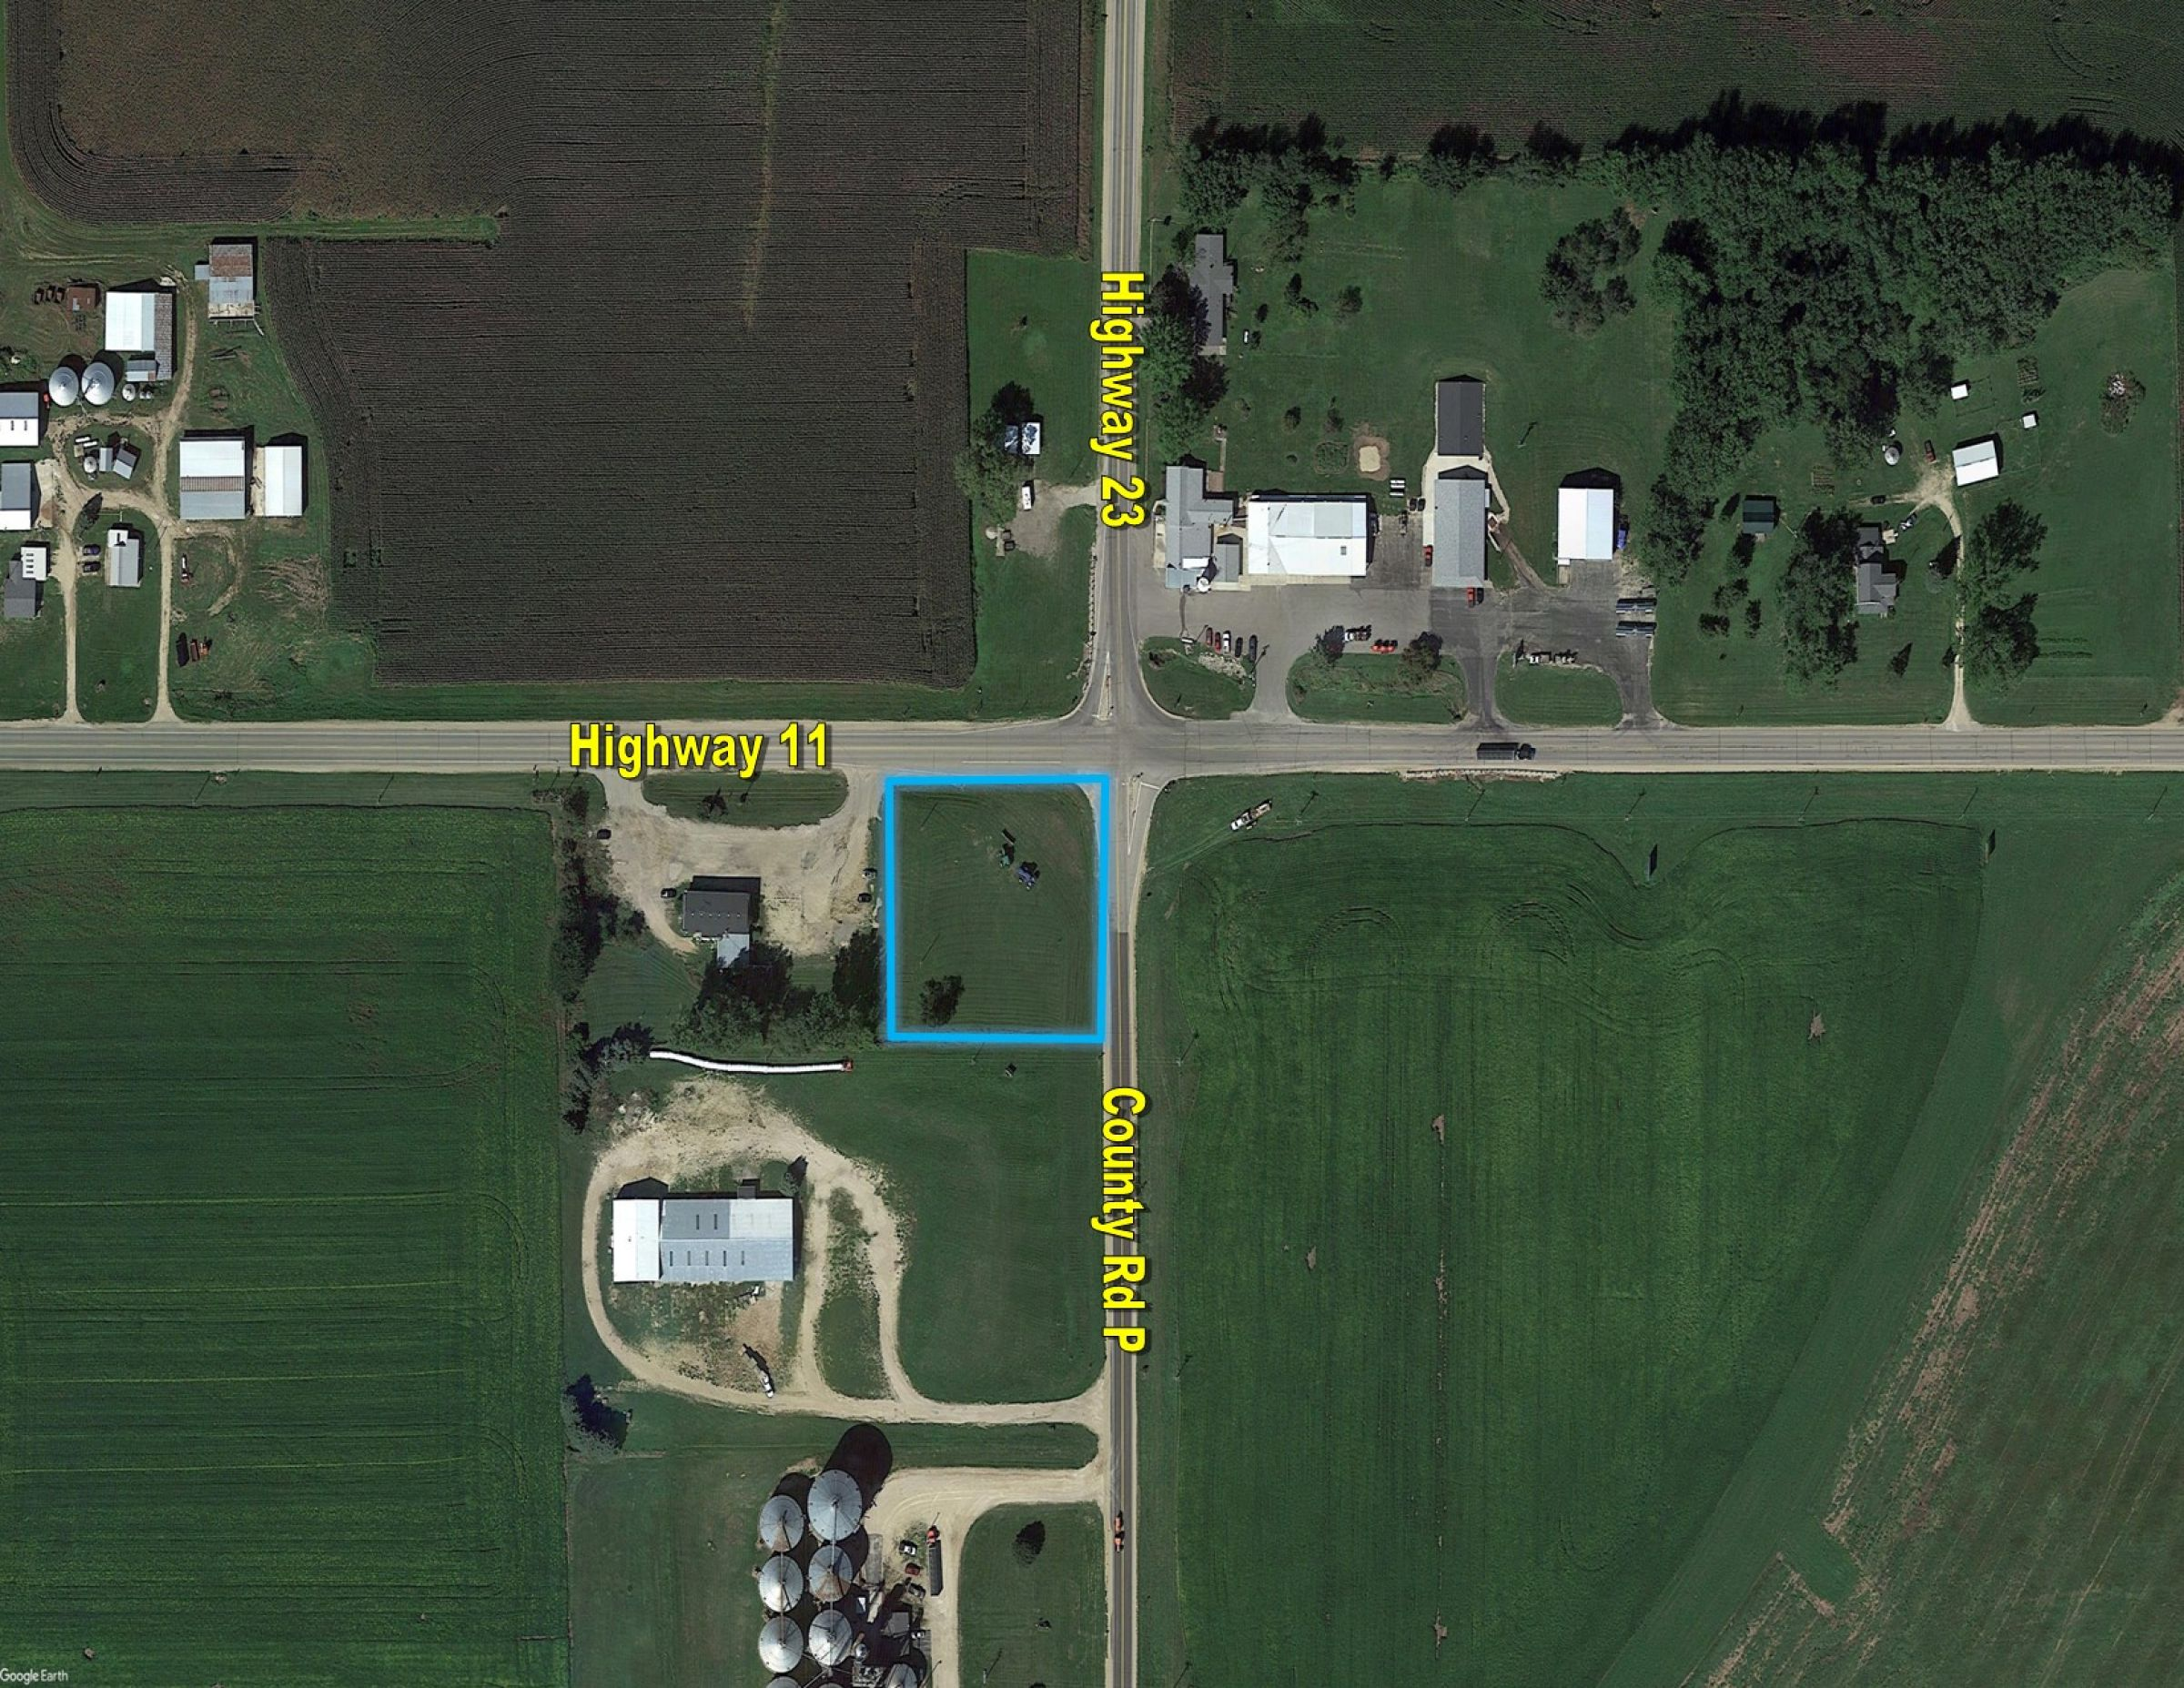 lafayette-county-wisconsin-1-acres-listing-number-15560-0-2021-05-28-185414.jpg